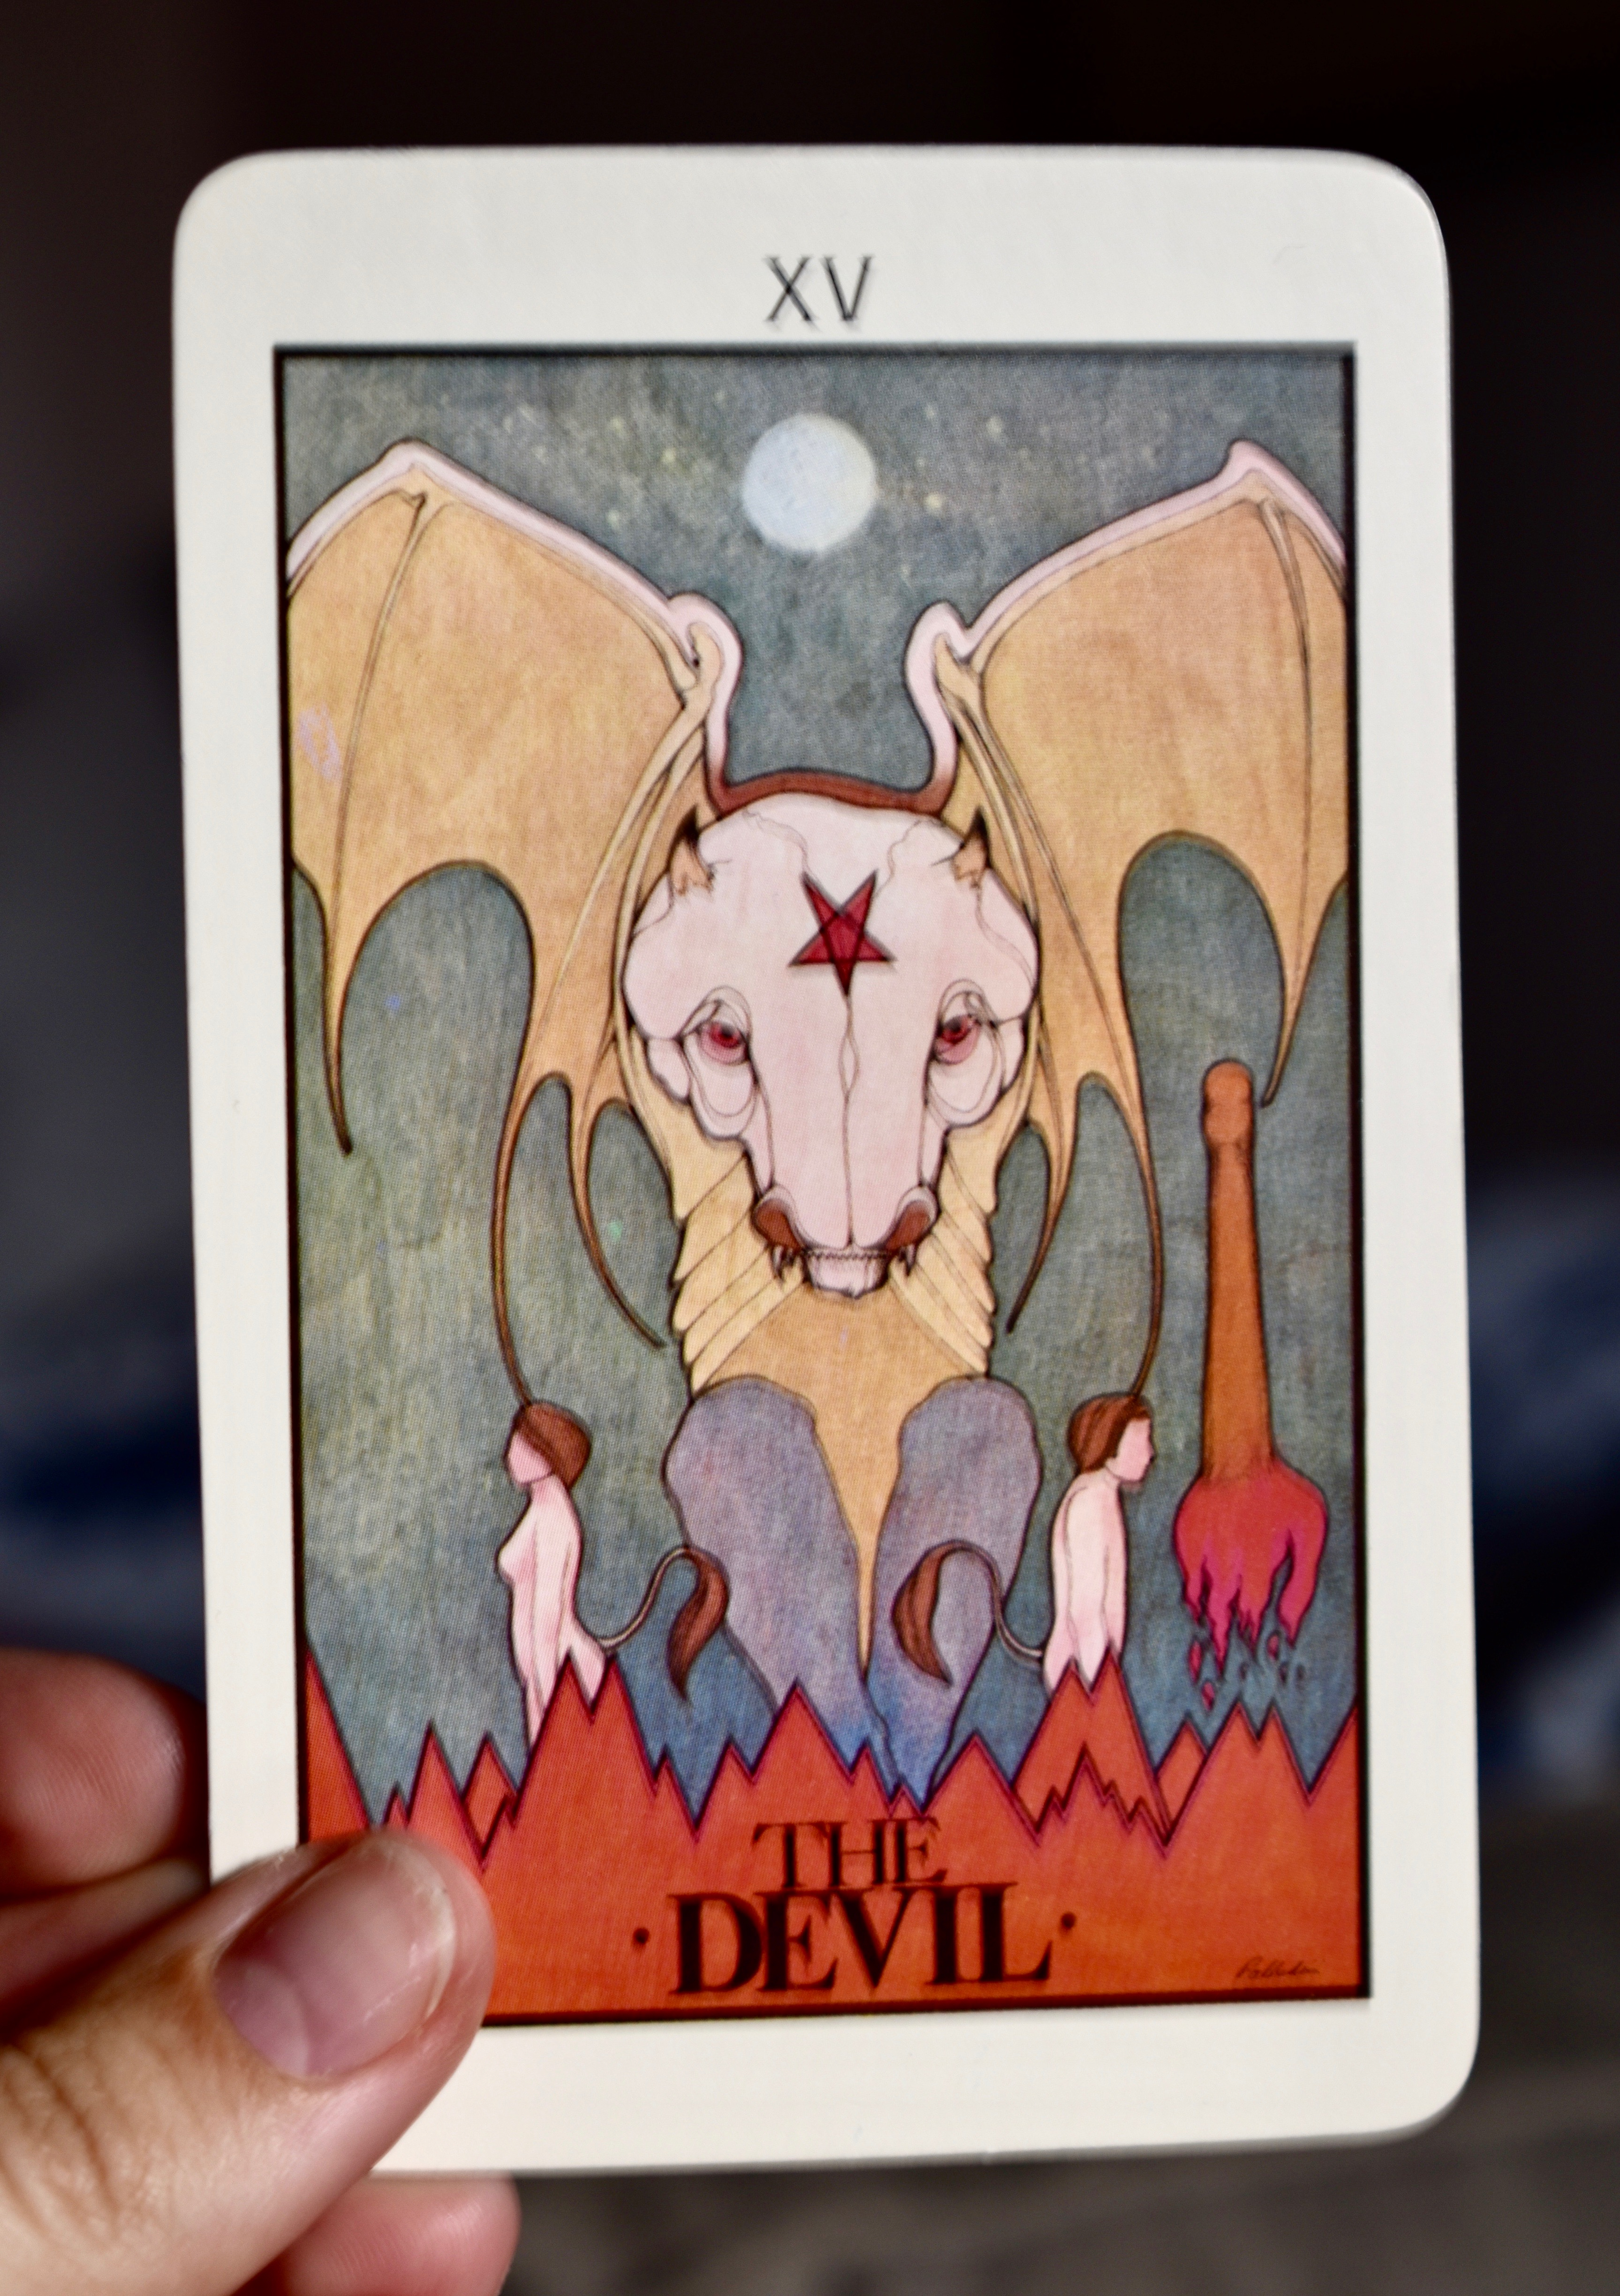 The Devil – Unhealthy Attachments, Toxic Relationships and Weak